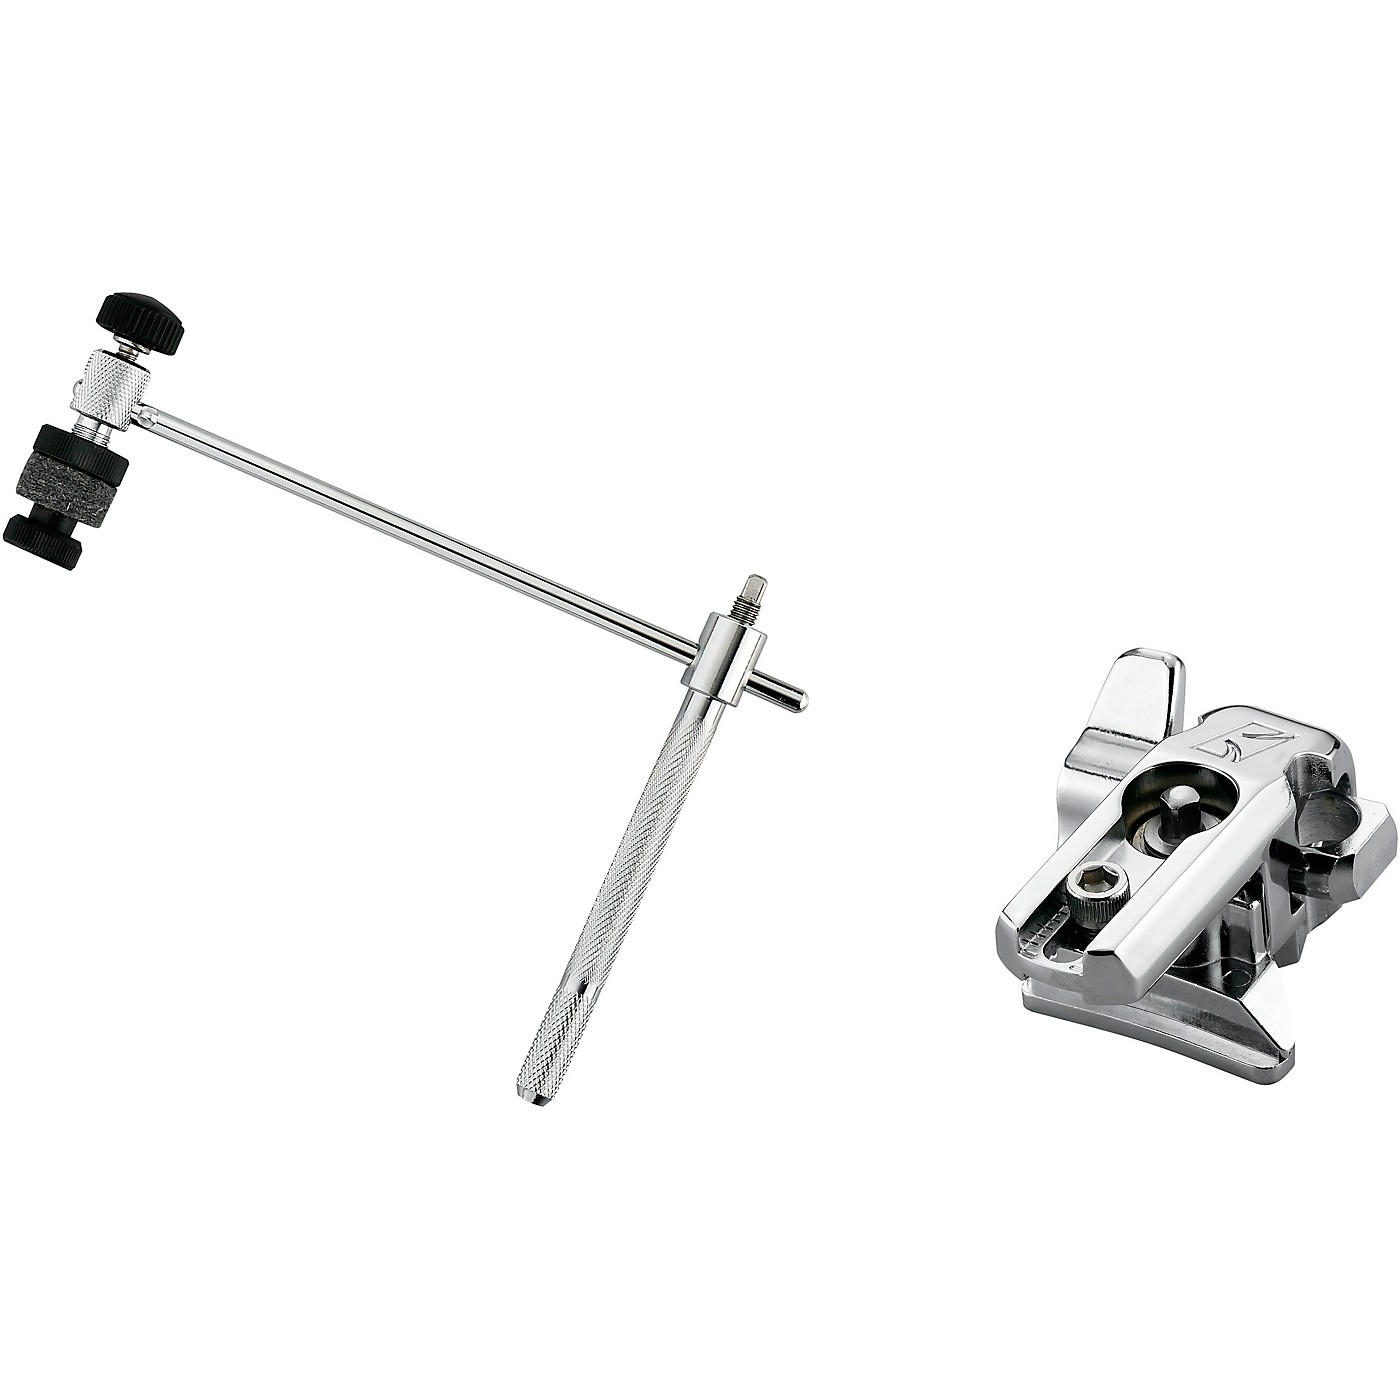 TAMA Accessory Mount Arm and Hoop Grip Bundle Package thumbnail